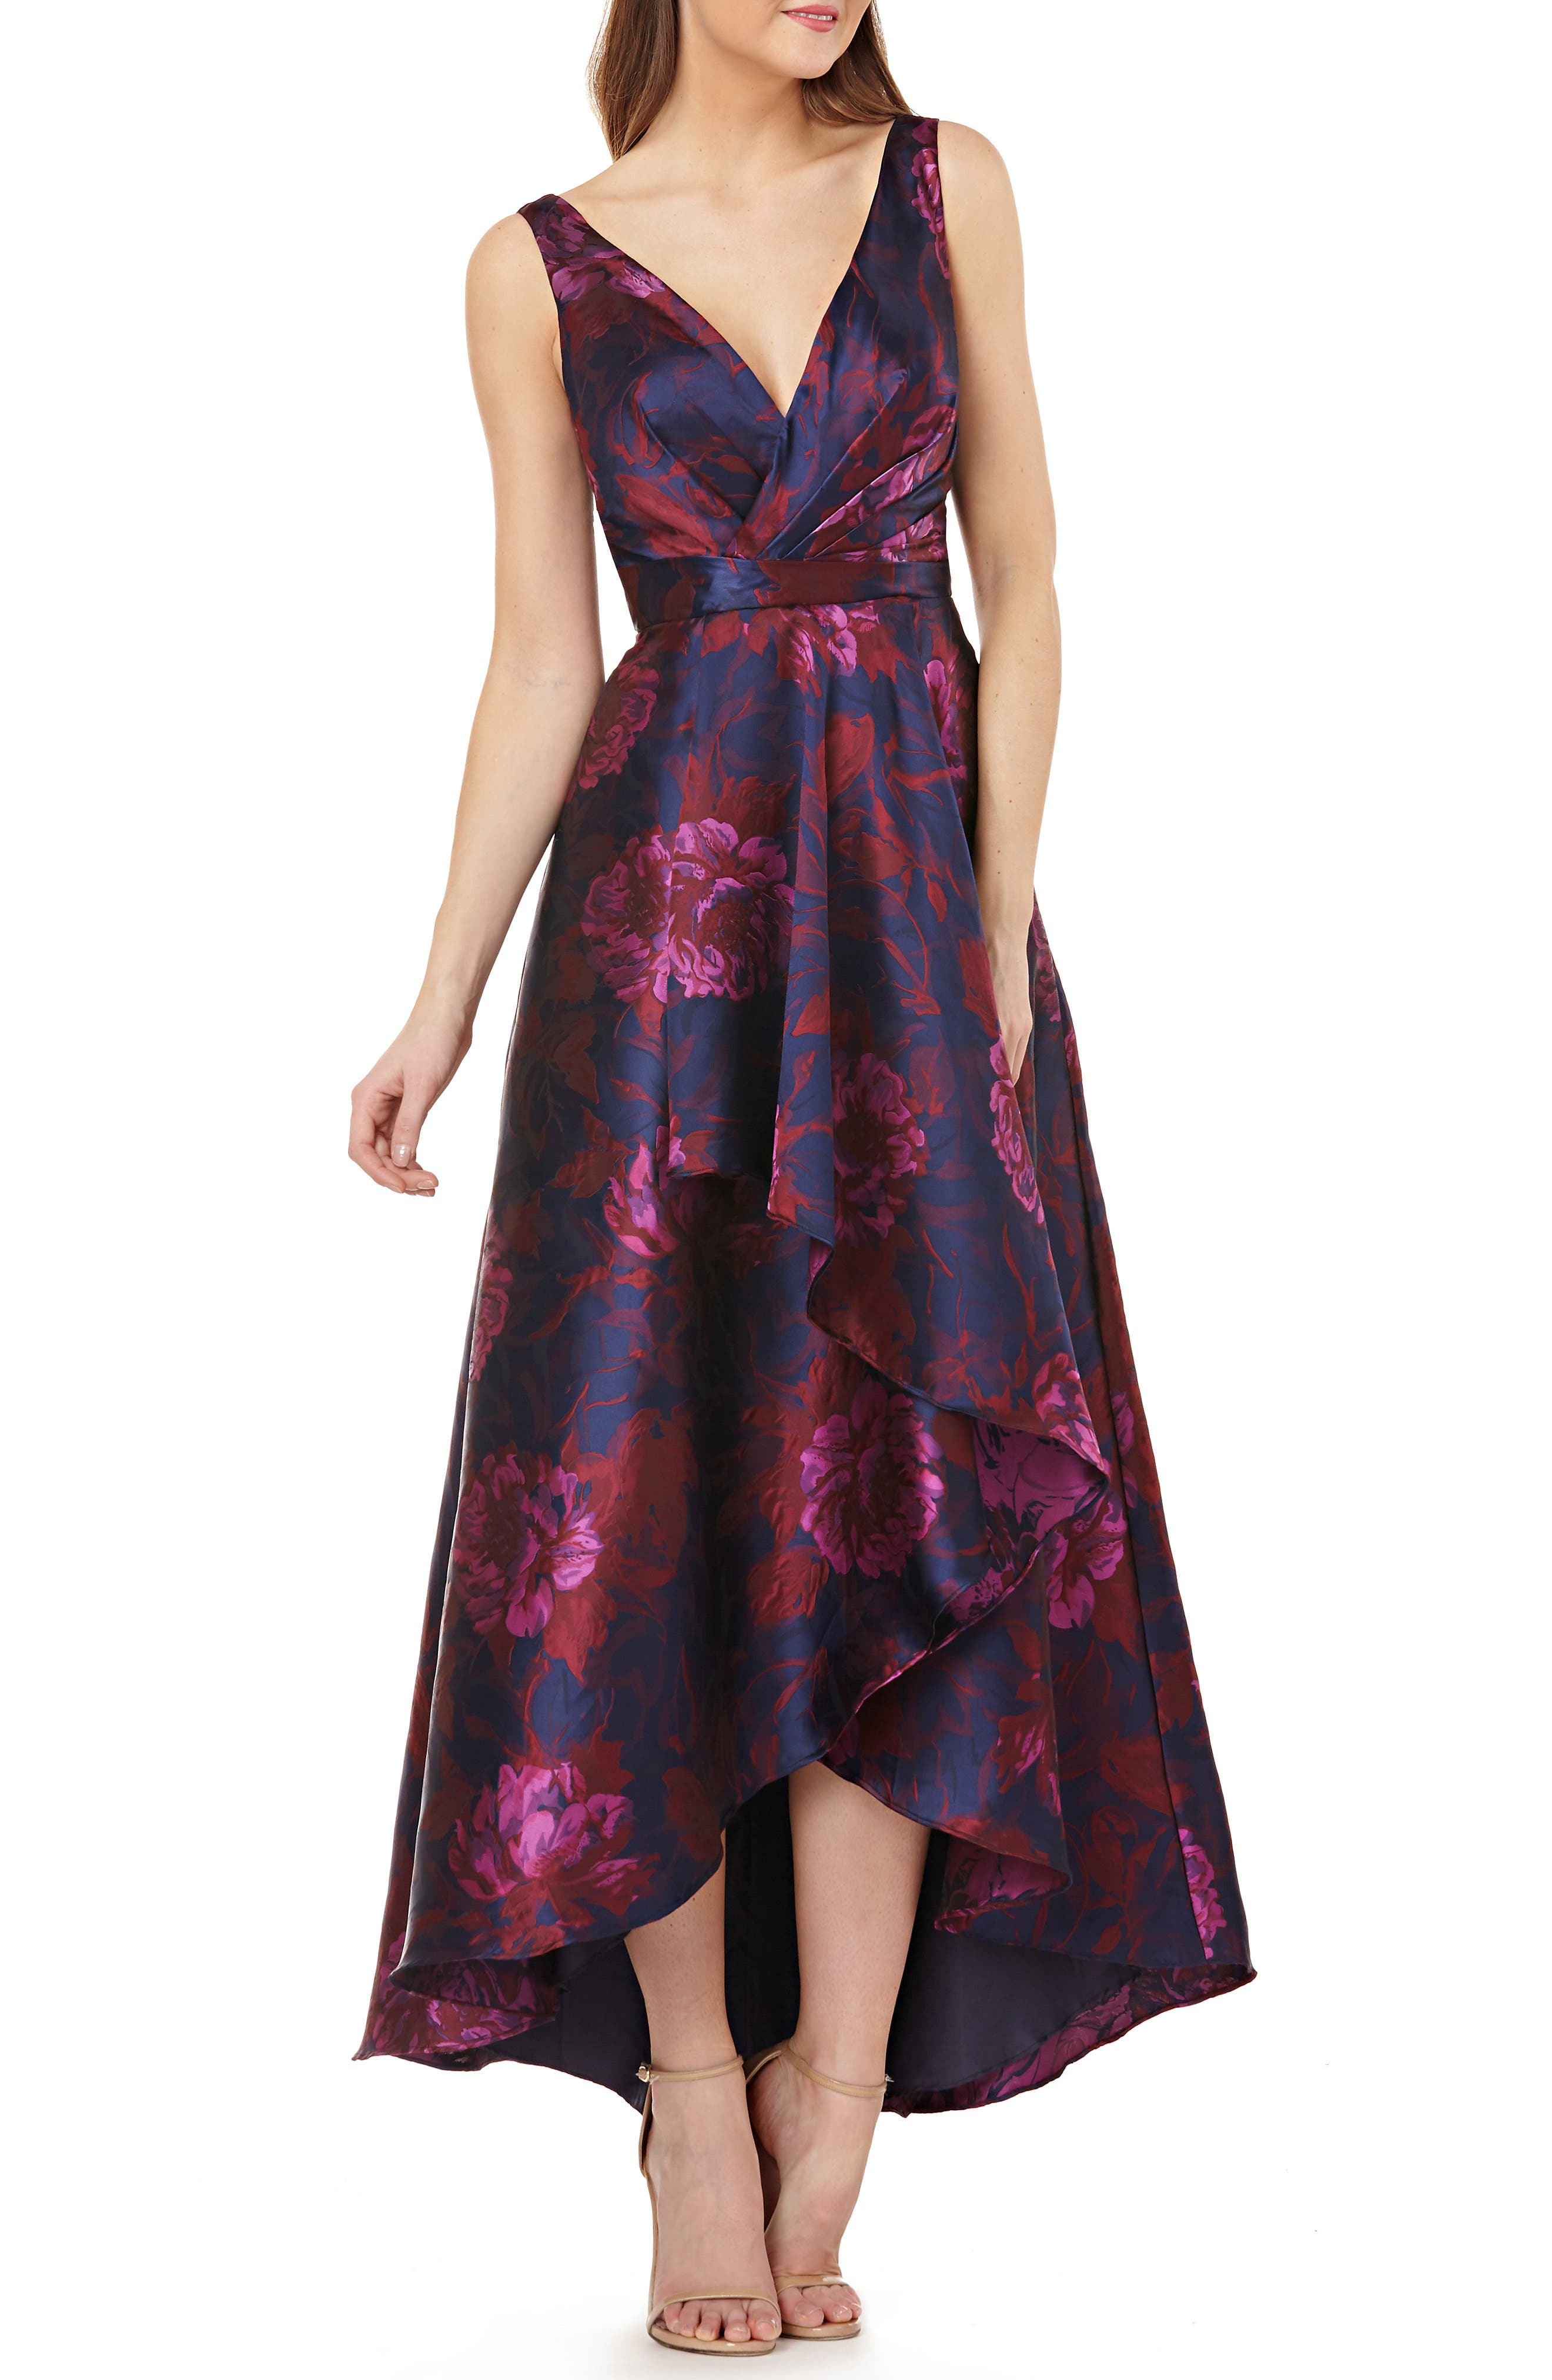 CARMEN MARC VALVO INFUSION Faux-Wrap High-Low Floral Ball Gown in Blue/Pink